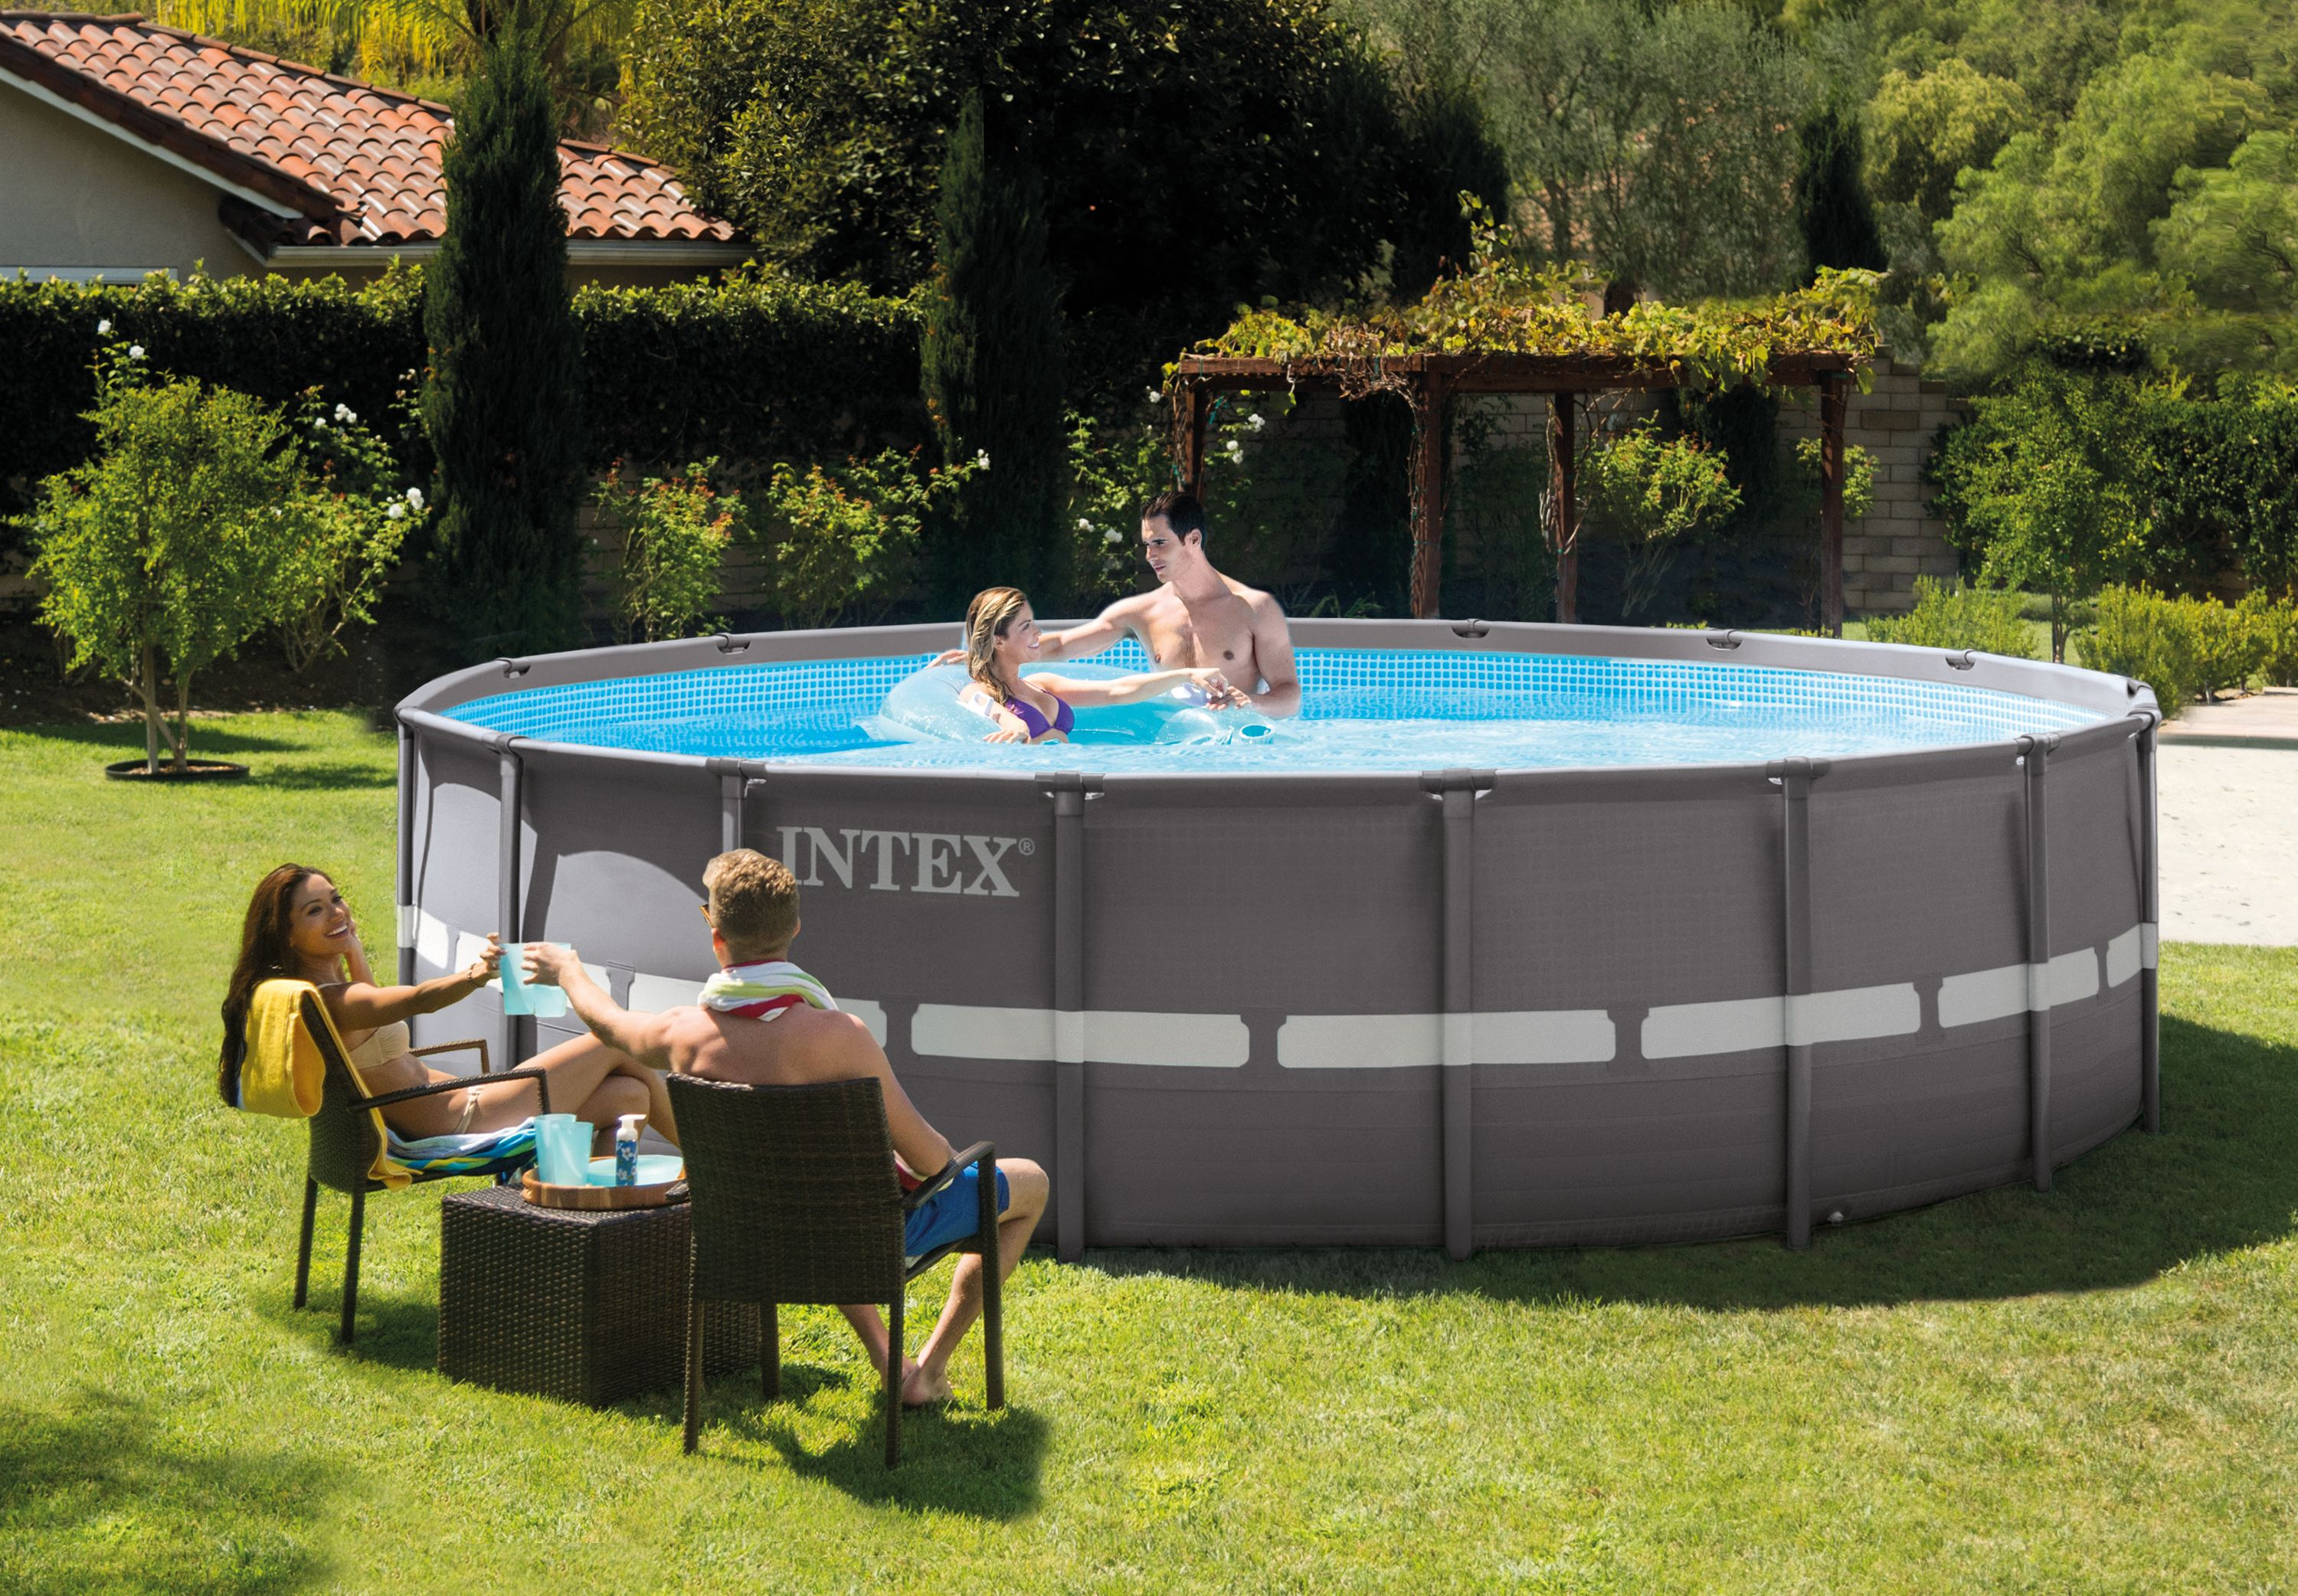 At A 16 Diameter And All Of The Accessories You Ll Need For A Great Summer In The Sun The Intex 16 X 48 Ultra Best Above Ground Pool Above Ground Pool